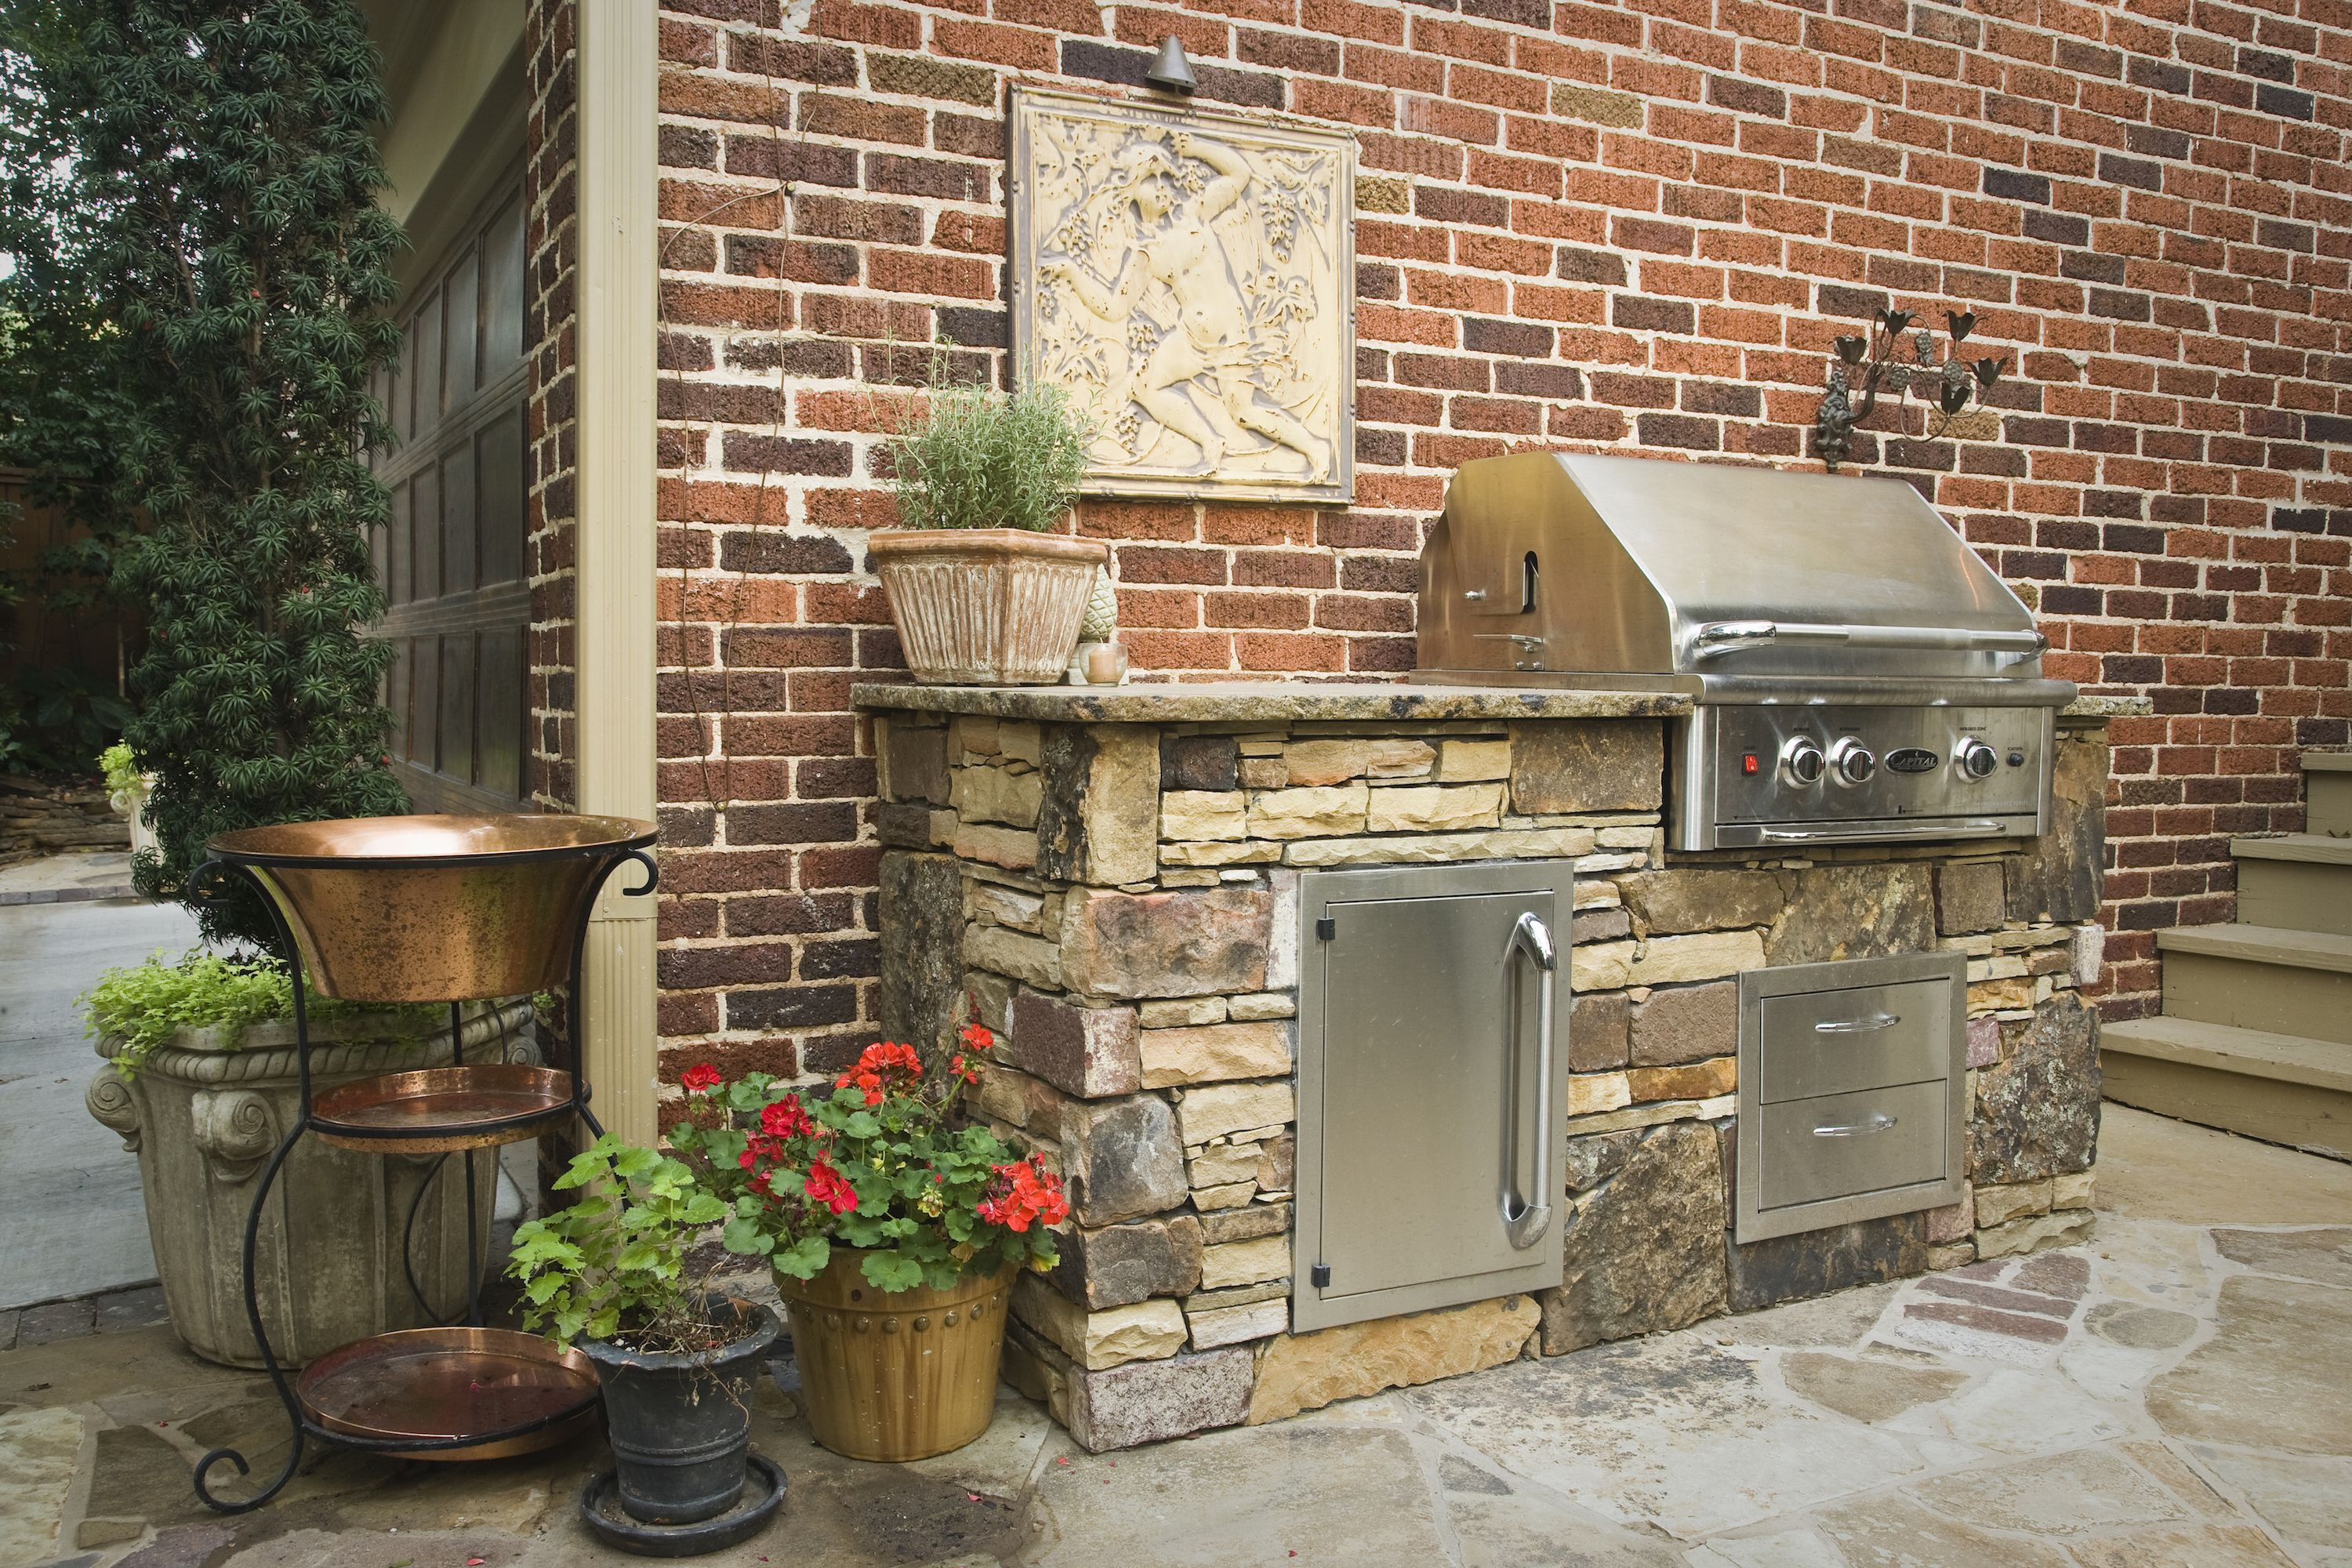 15 outdoor kitchen design ideas tips for outdoor cooking